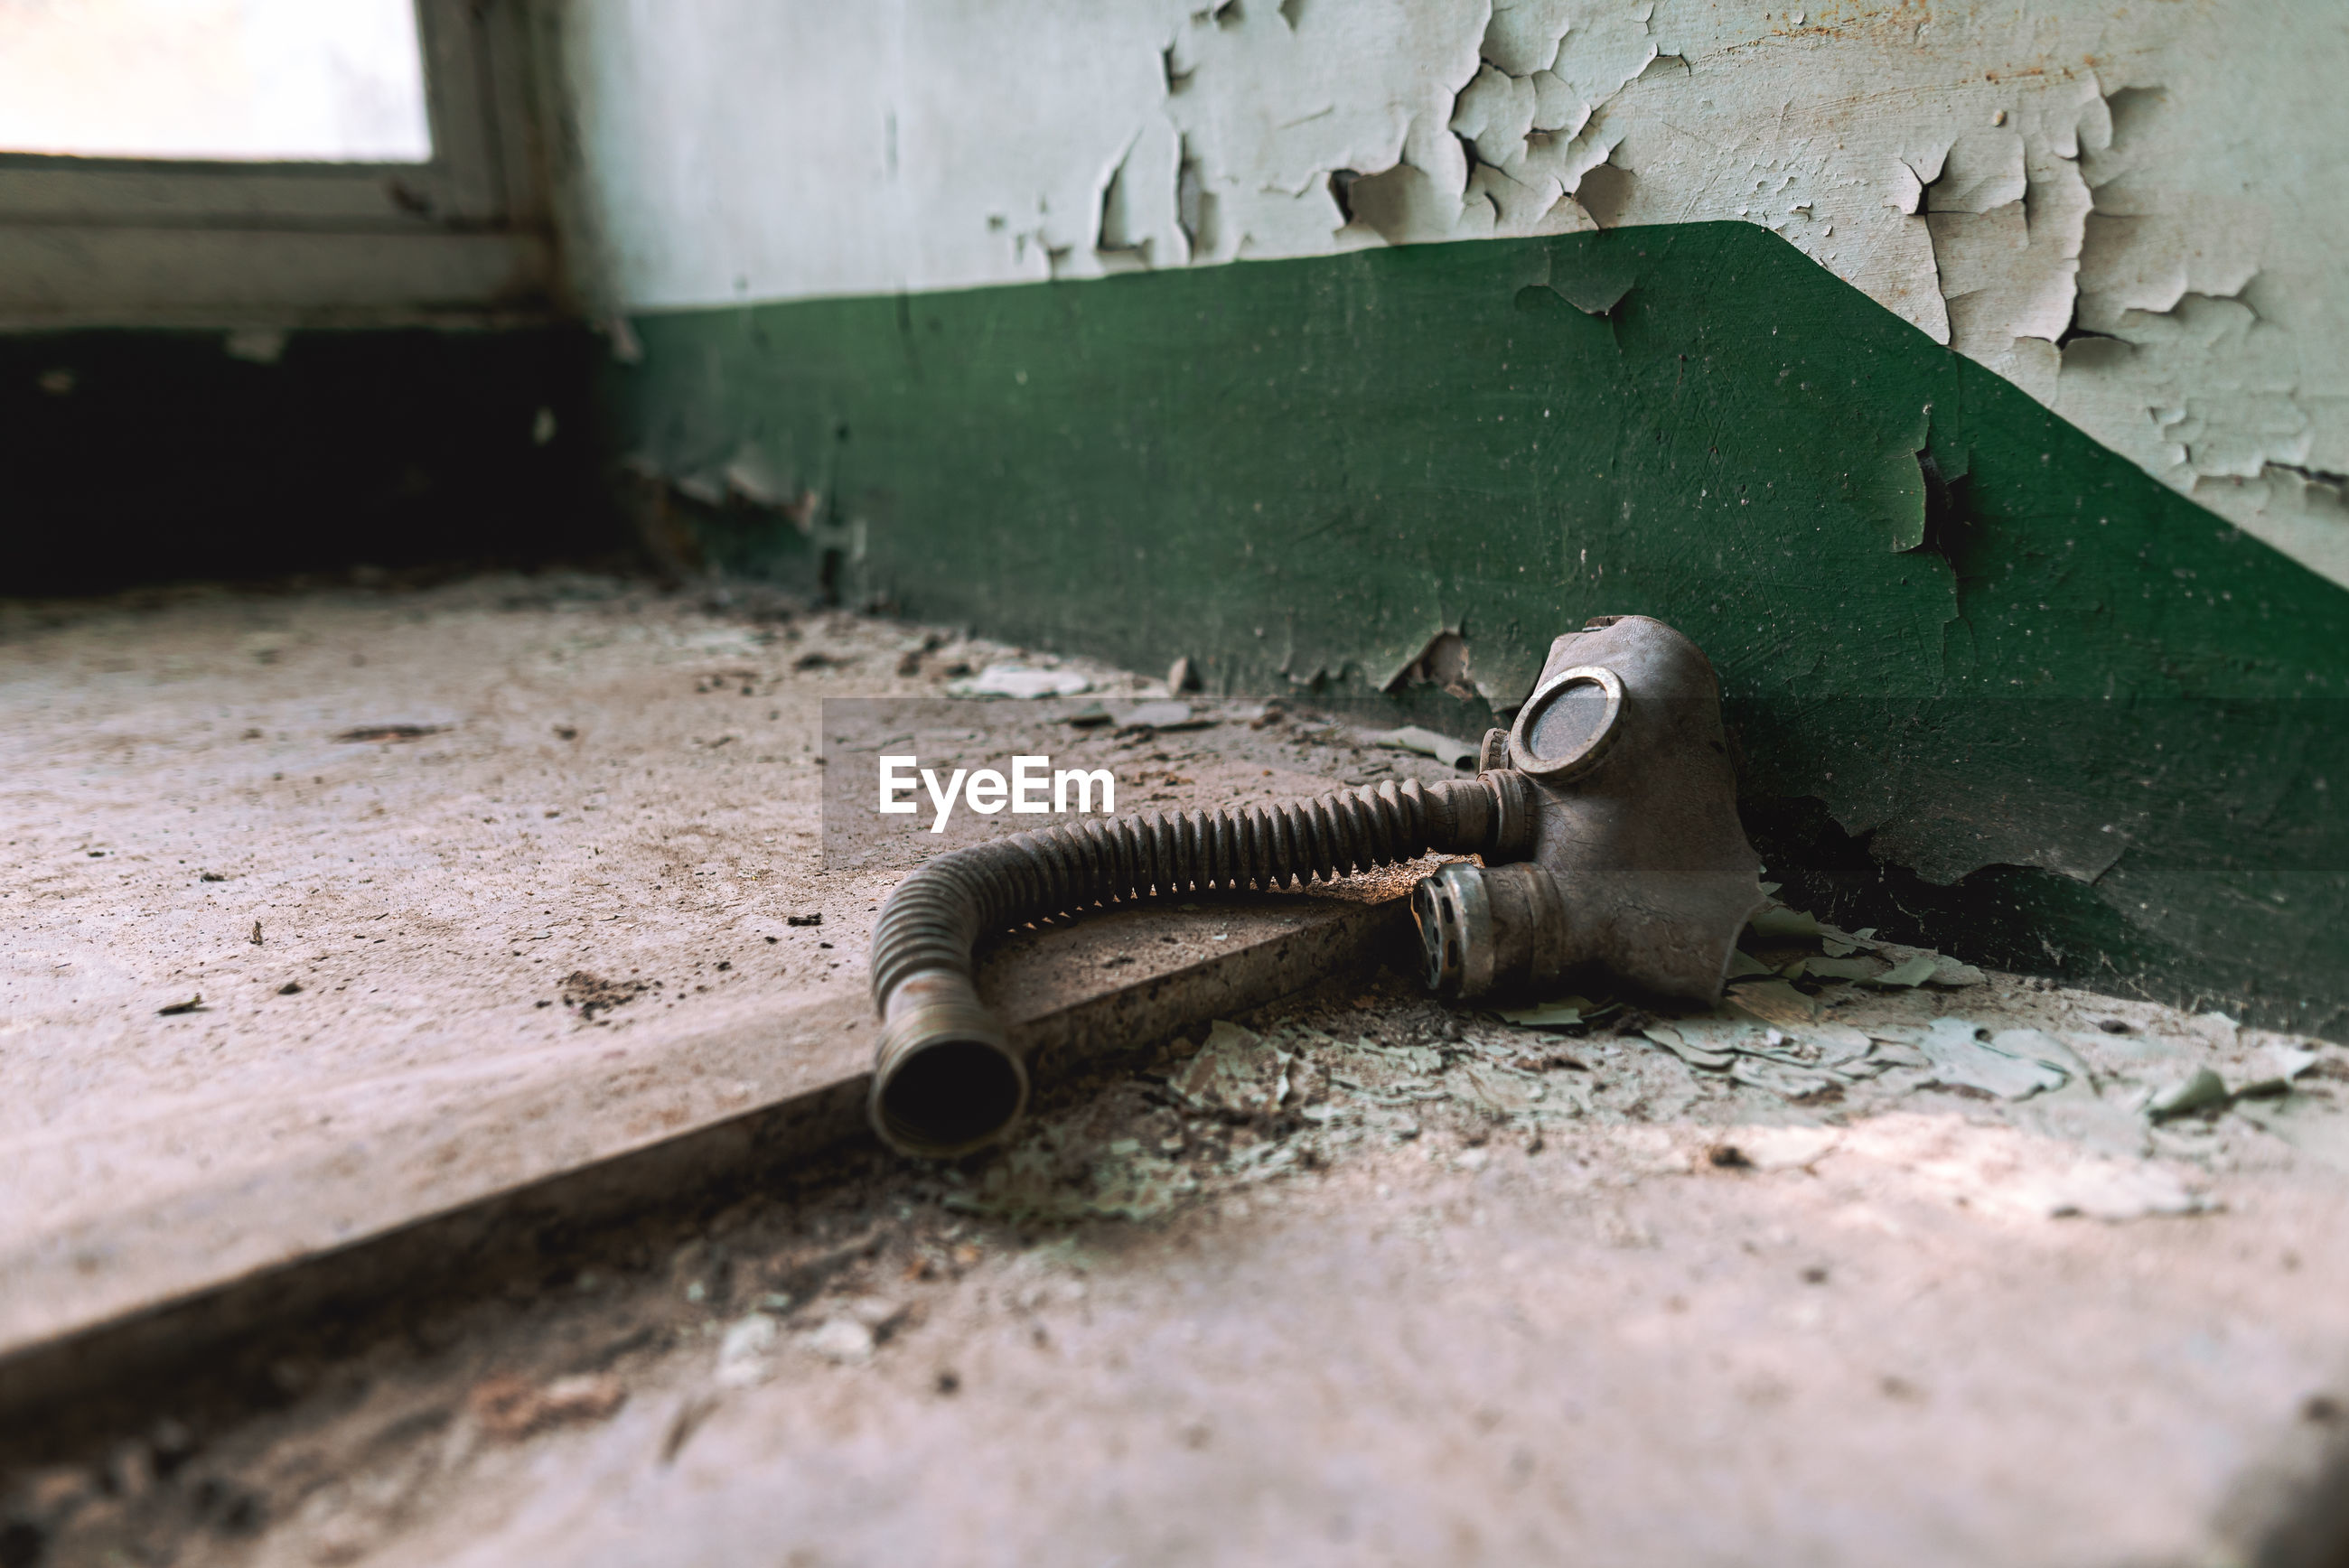 Close-up of old gas mask on floor